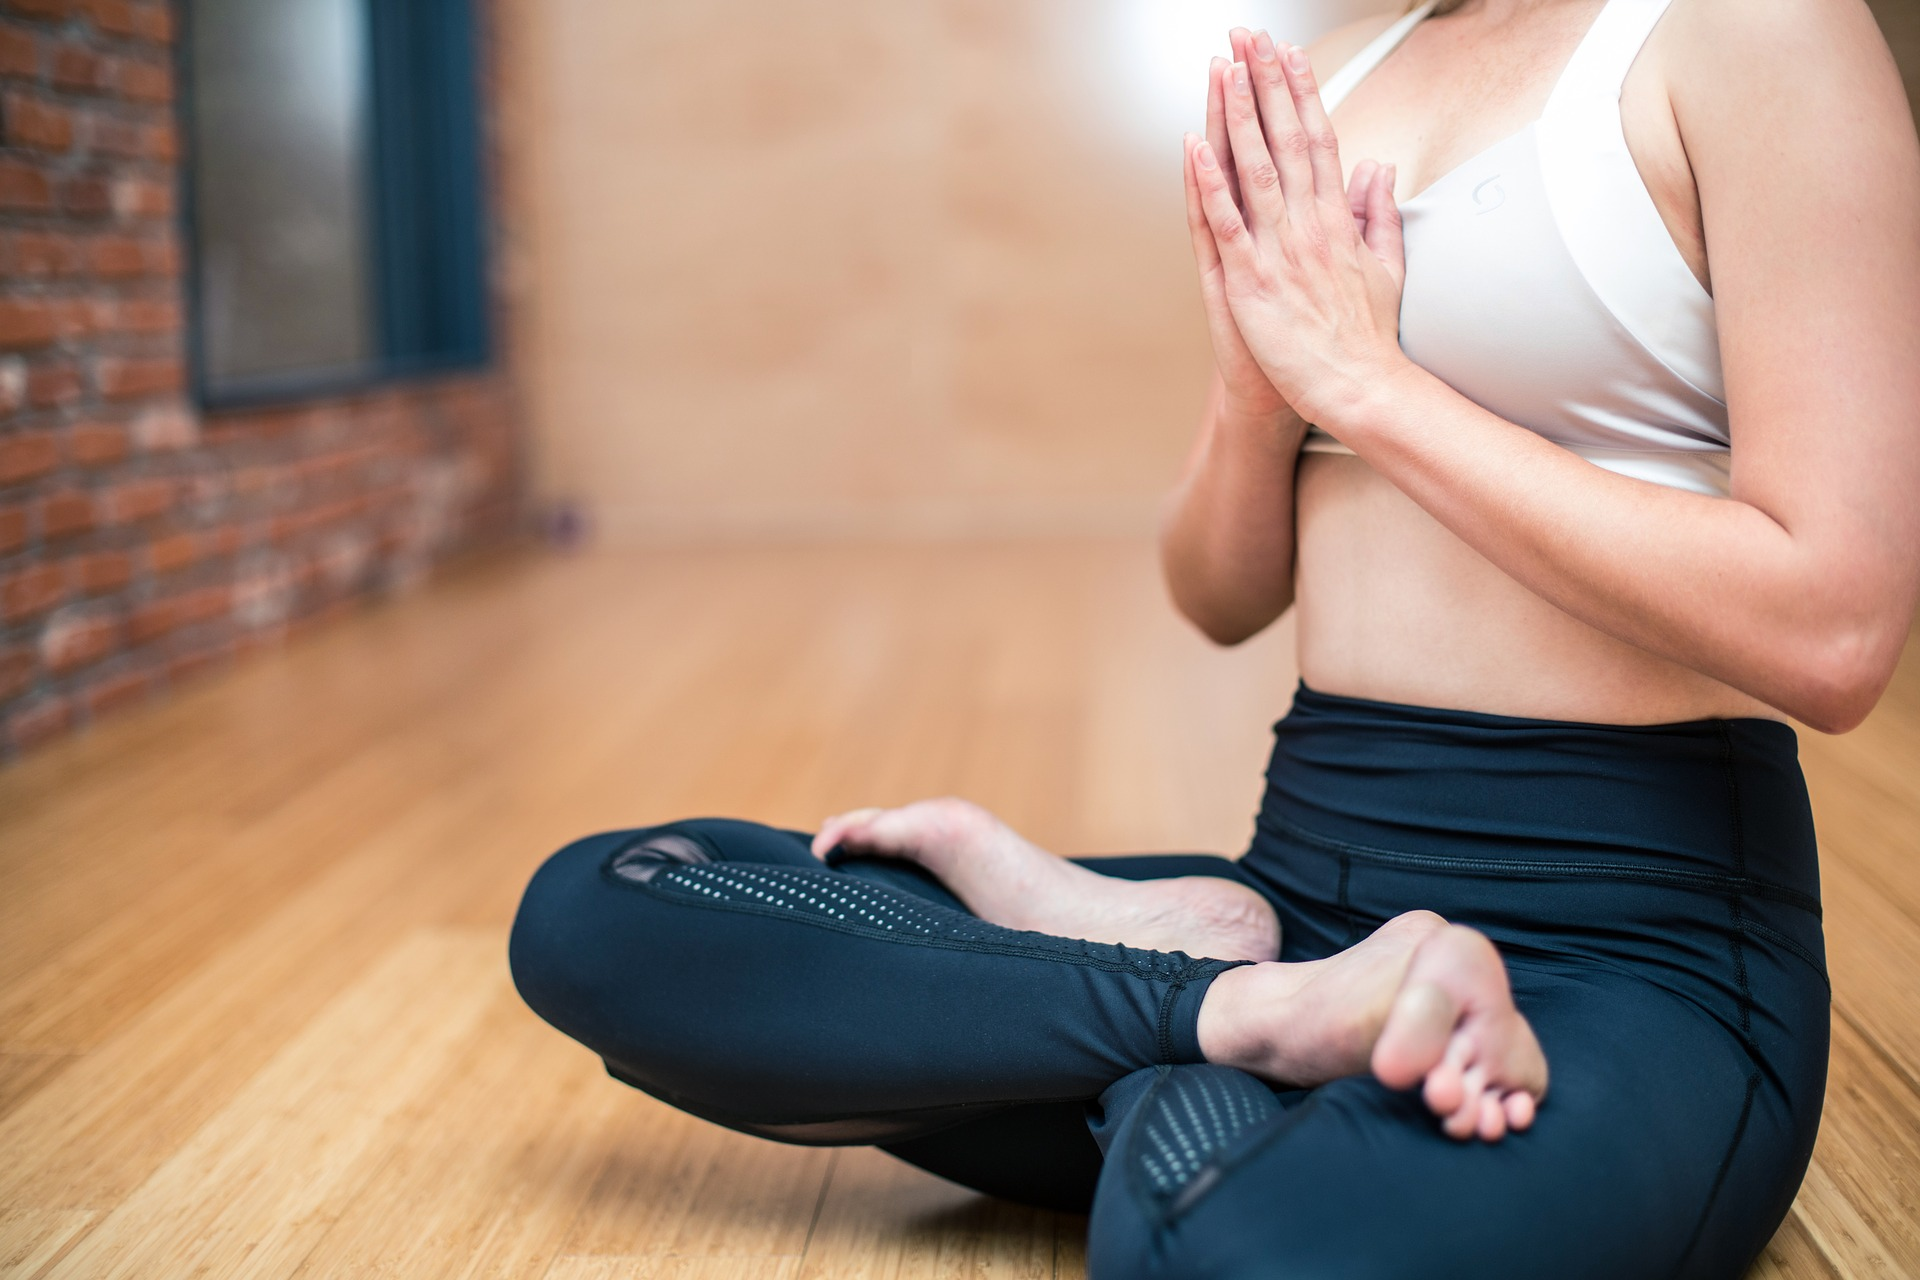 YogaFest Middle East will host classes suitable for all levels